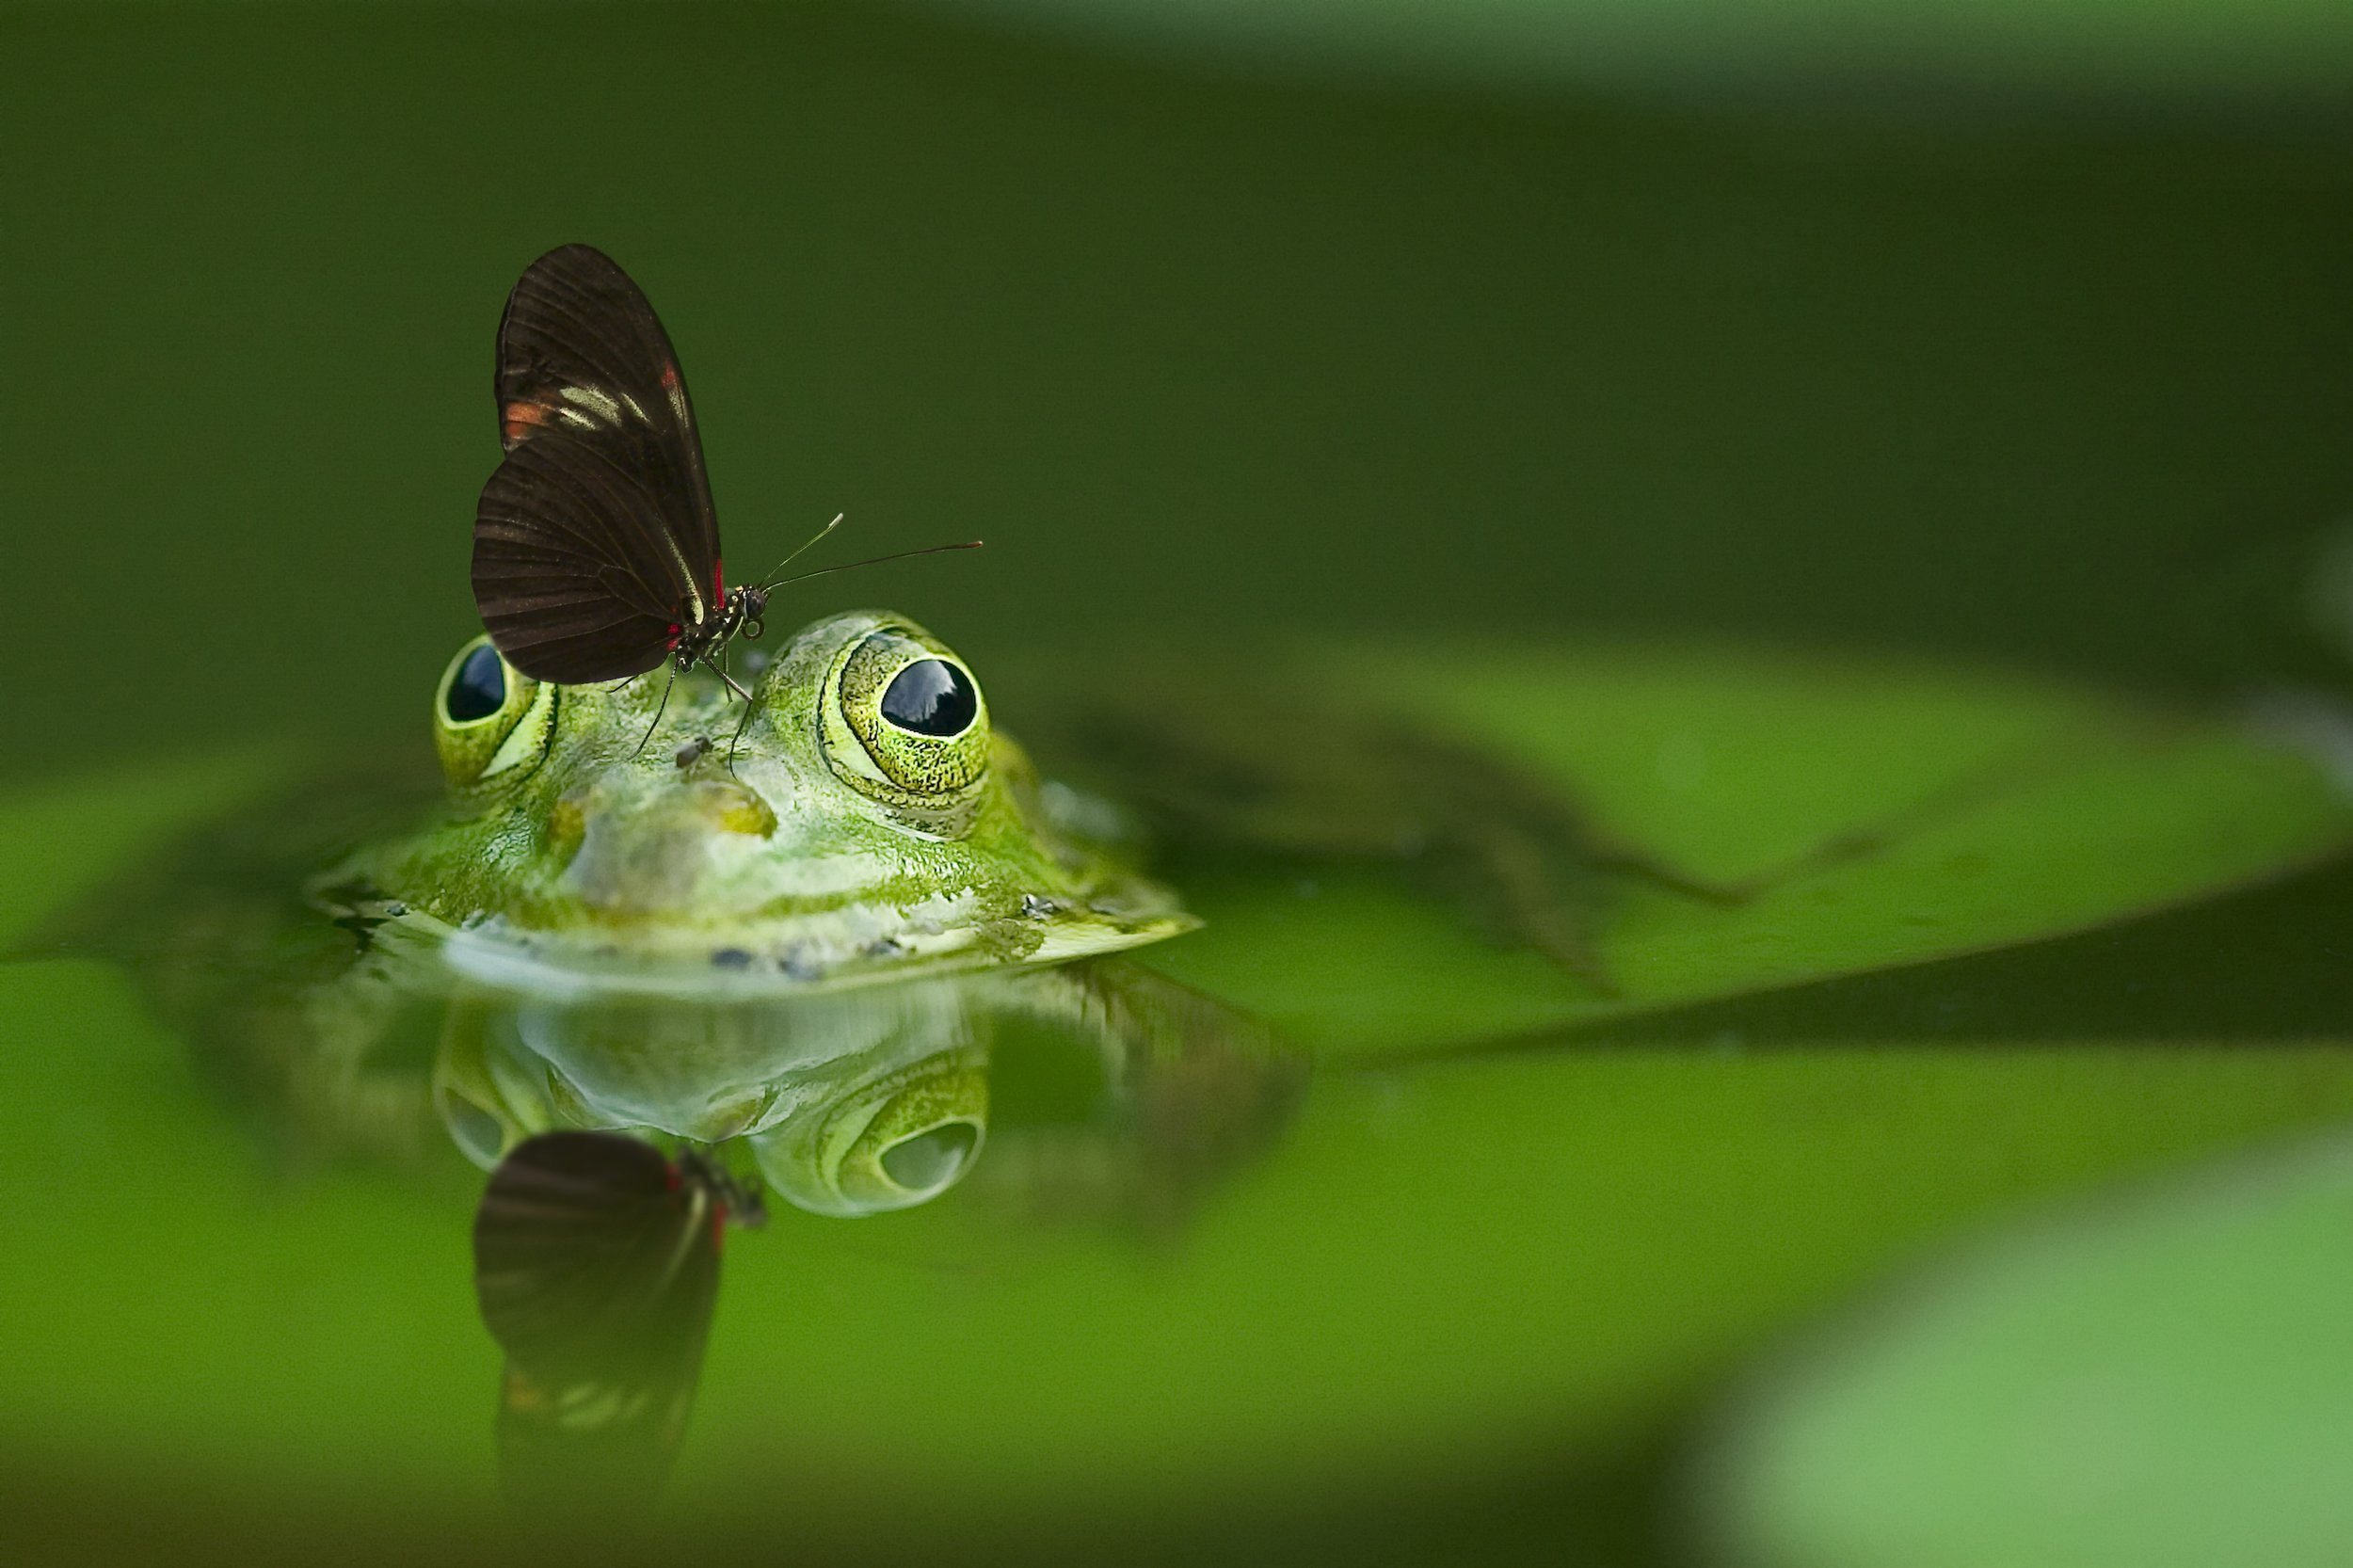 frog-butterfly-pond-mirroring-45863.jpeg